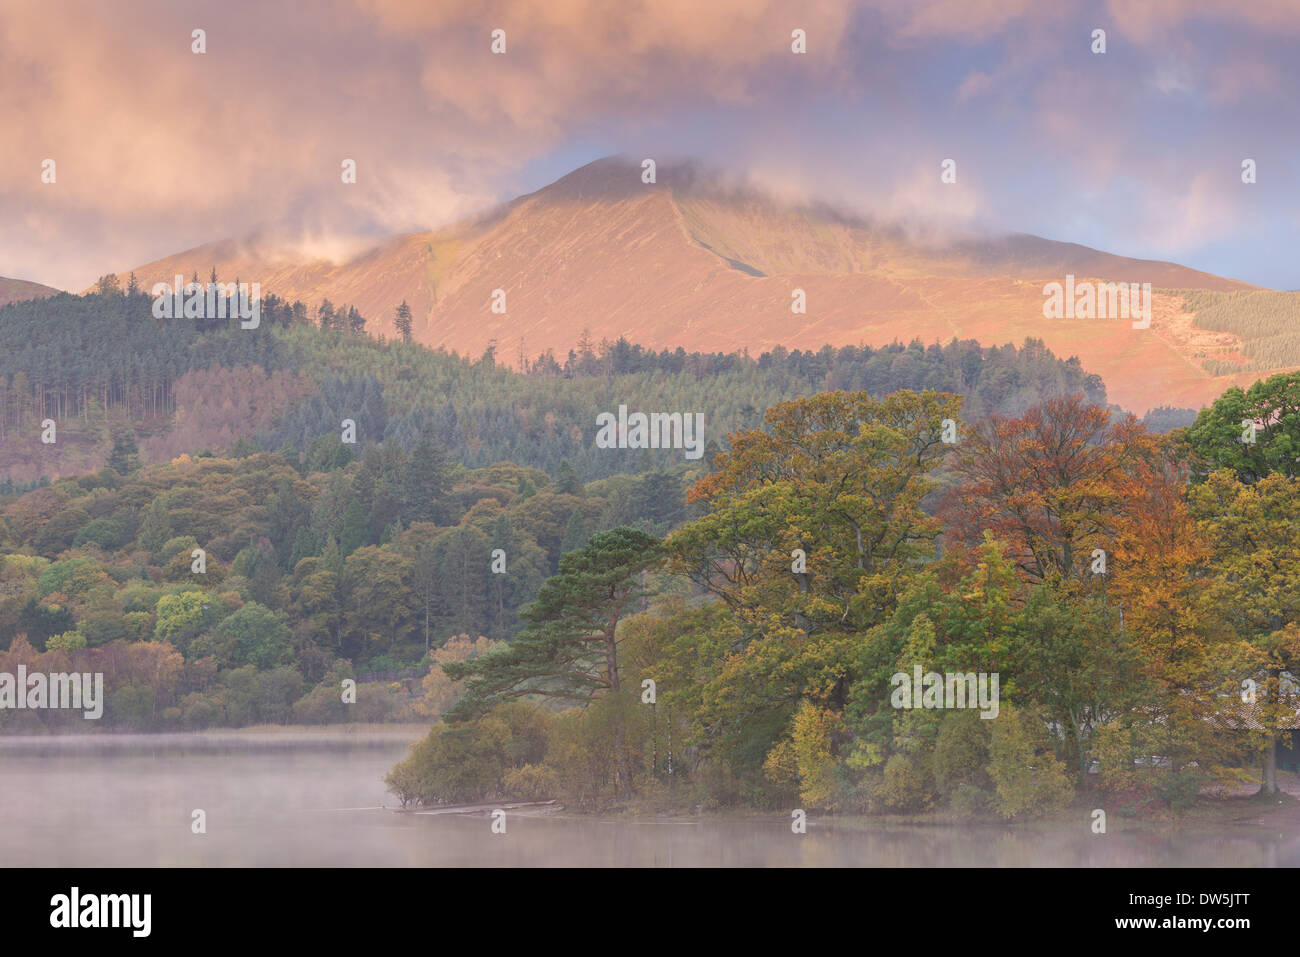 Autumn foliage on the banks of Derwentwater at dawn, Lake District, Cumbria, England. Autumn (October) 2012. - Stock Image